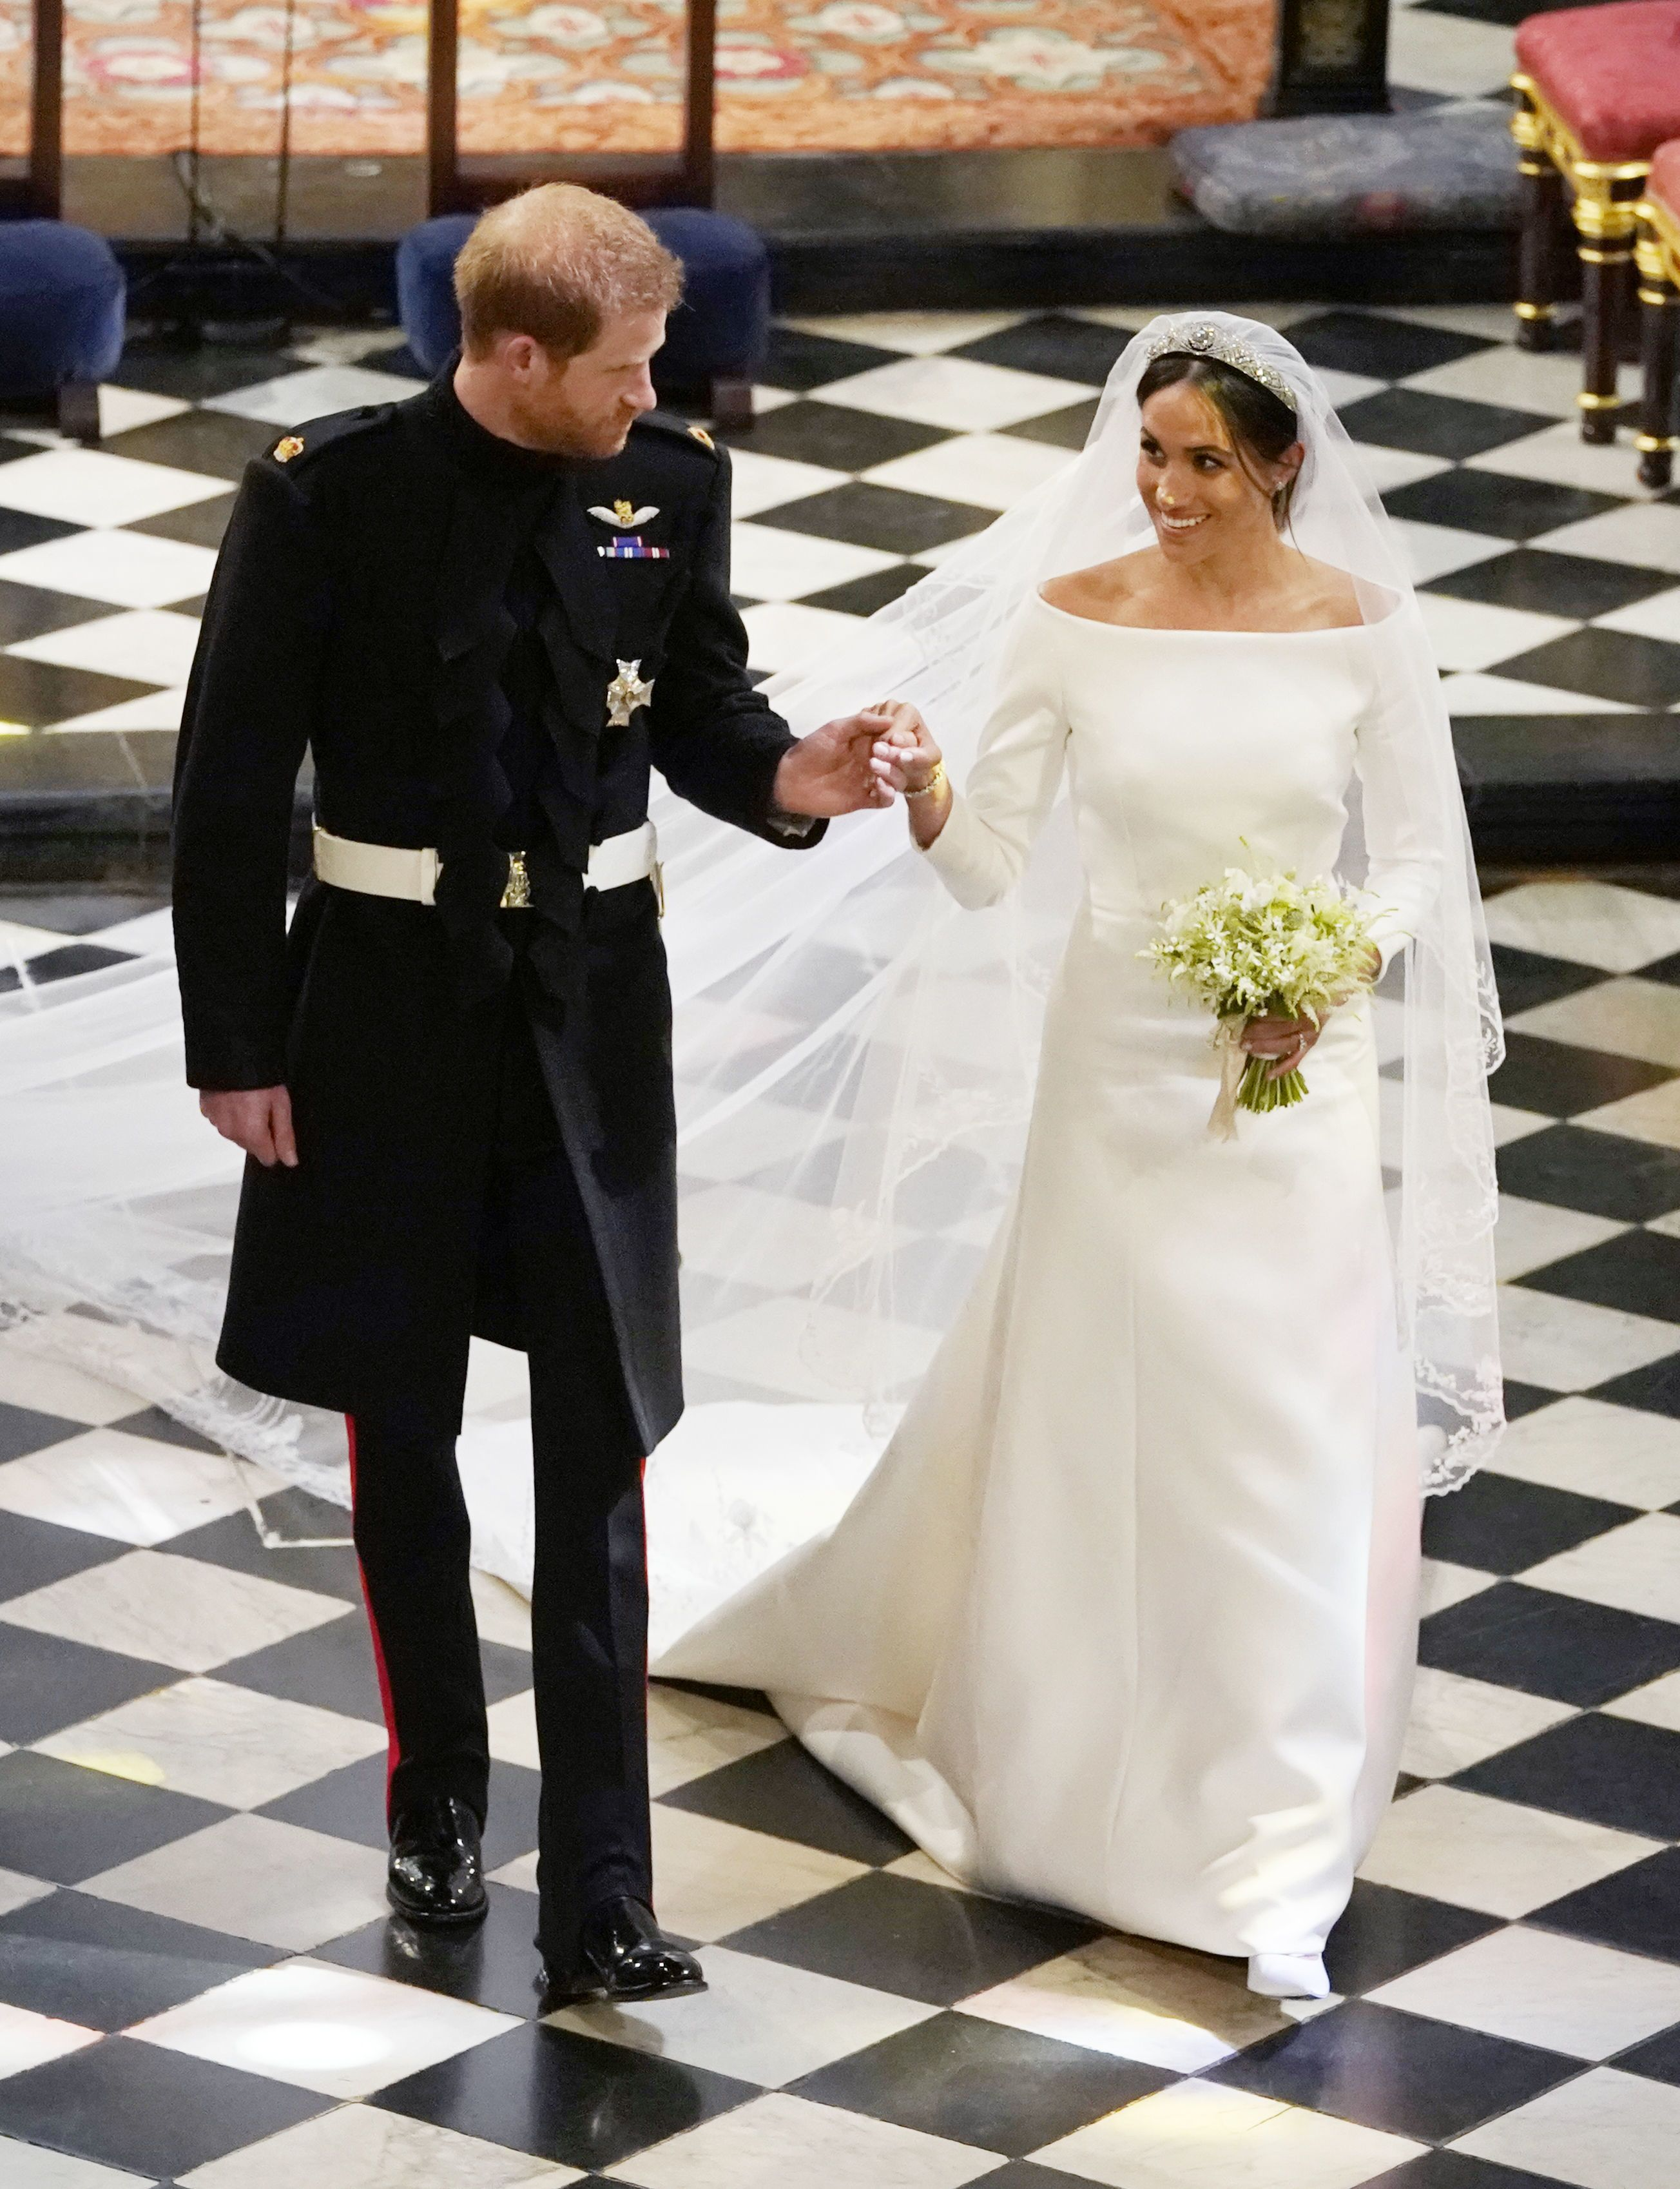 The Exact Cost Of Prince Harry And Meghan Markle's Royal Wedding Makes Our Eyes Water